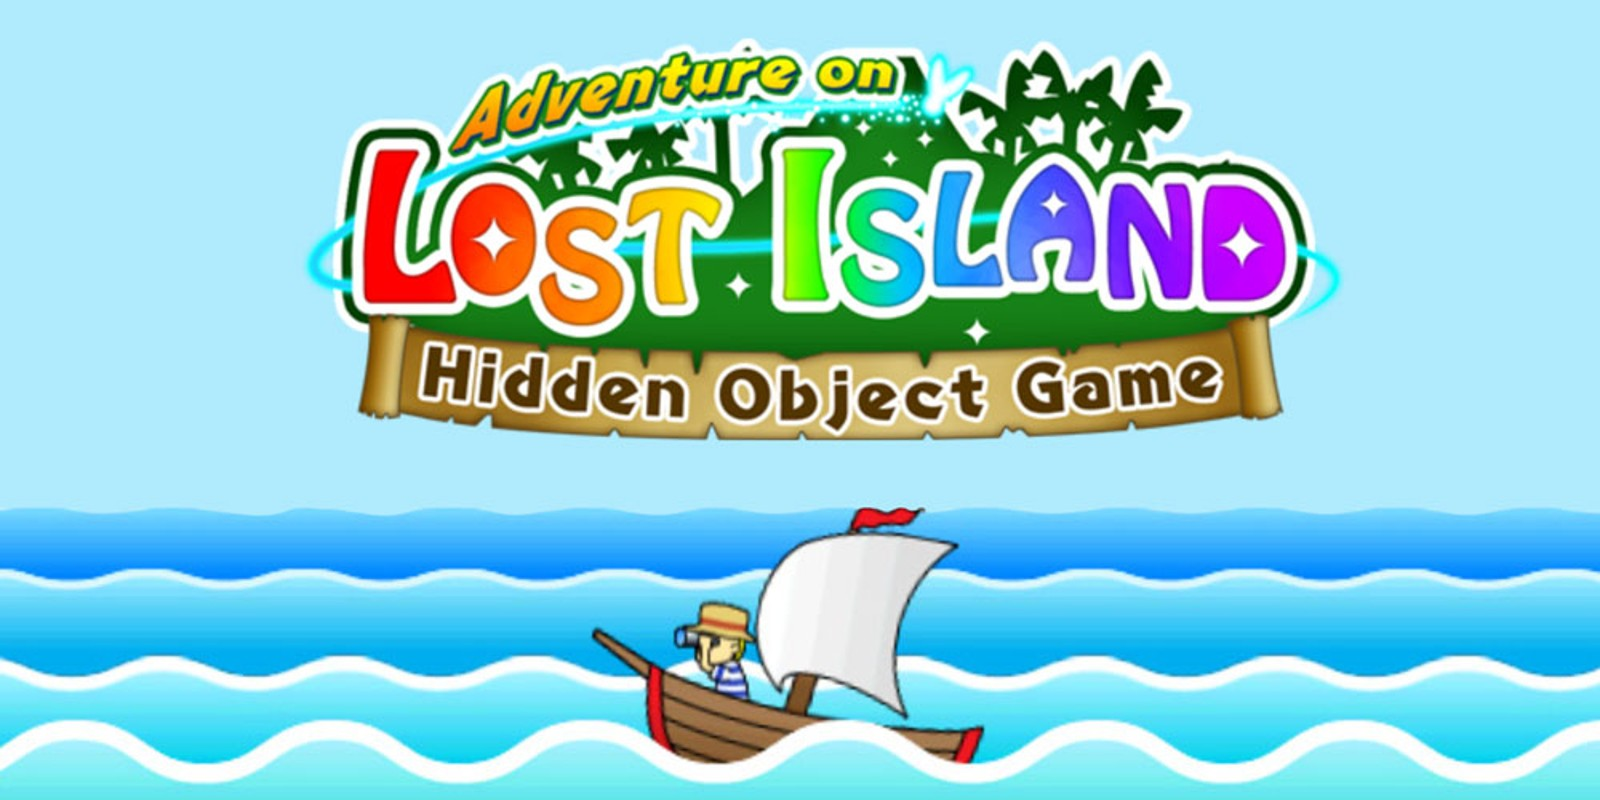 Adventure On Lost Island Hidden Object Game